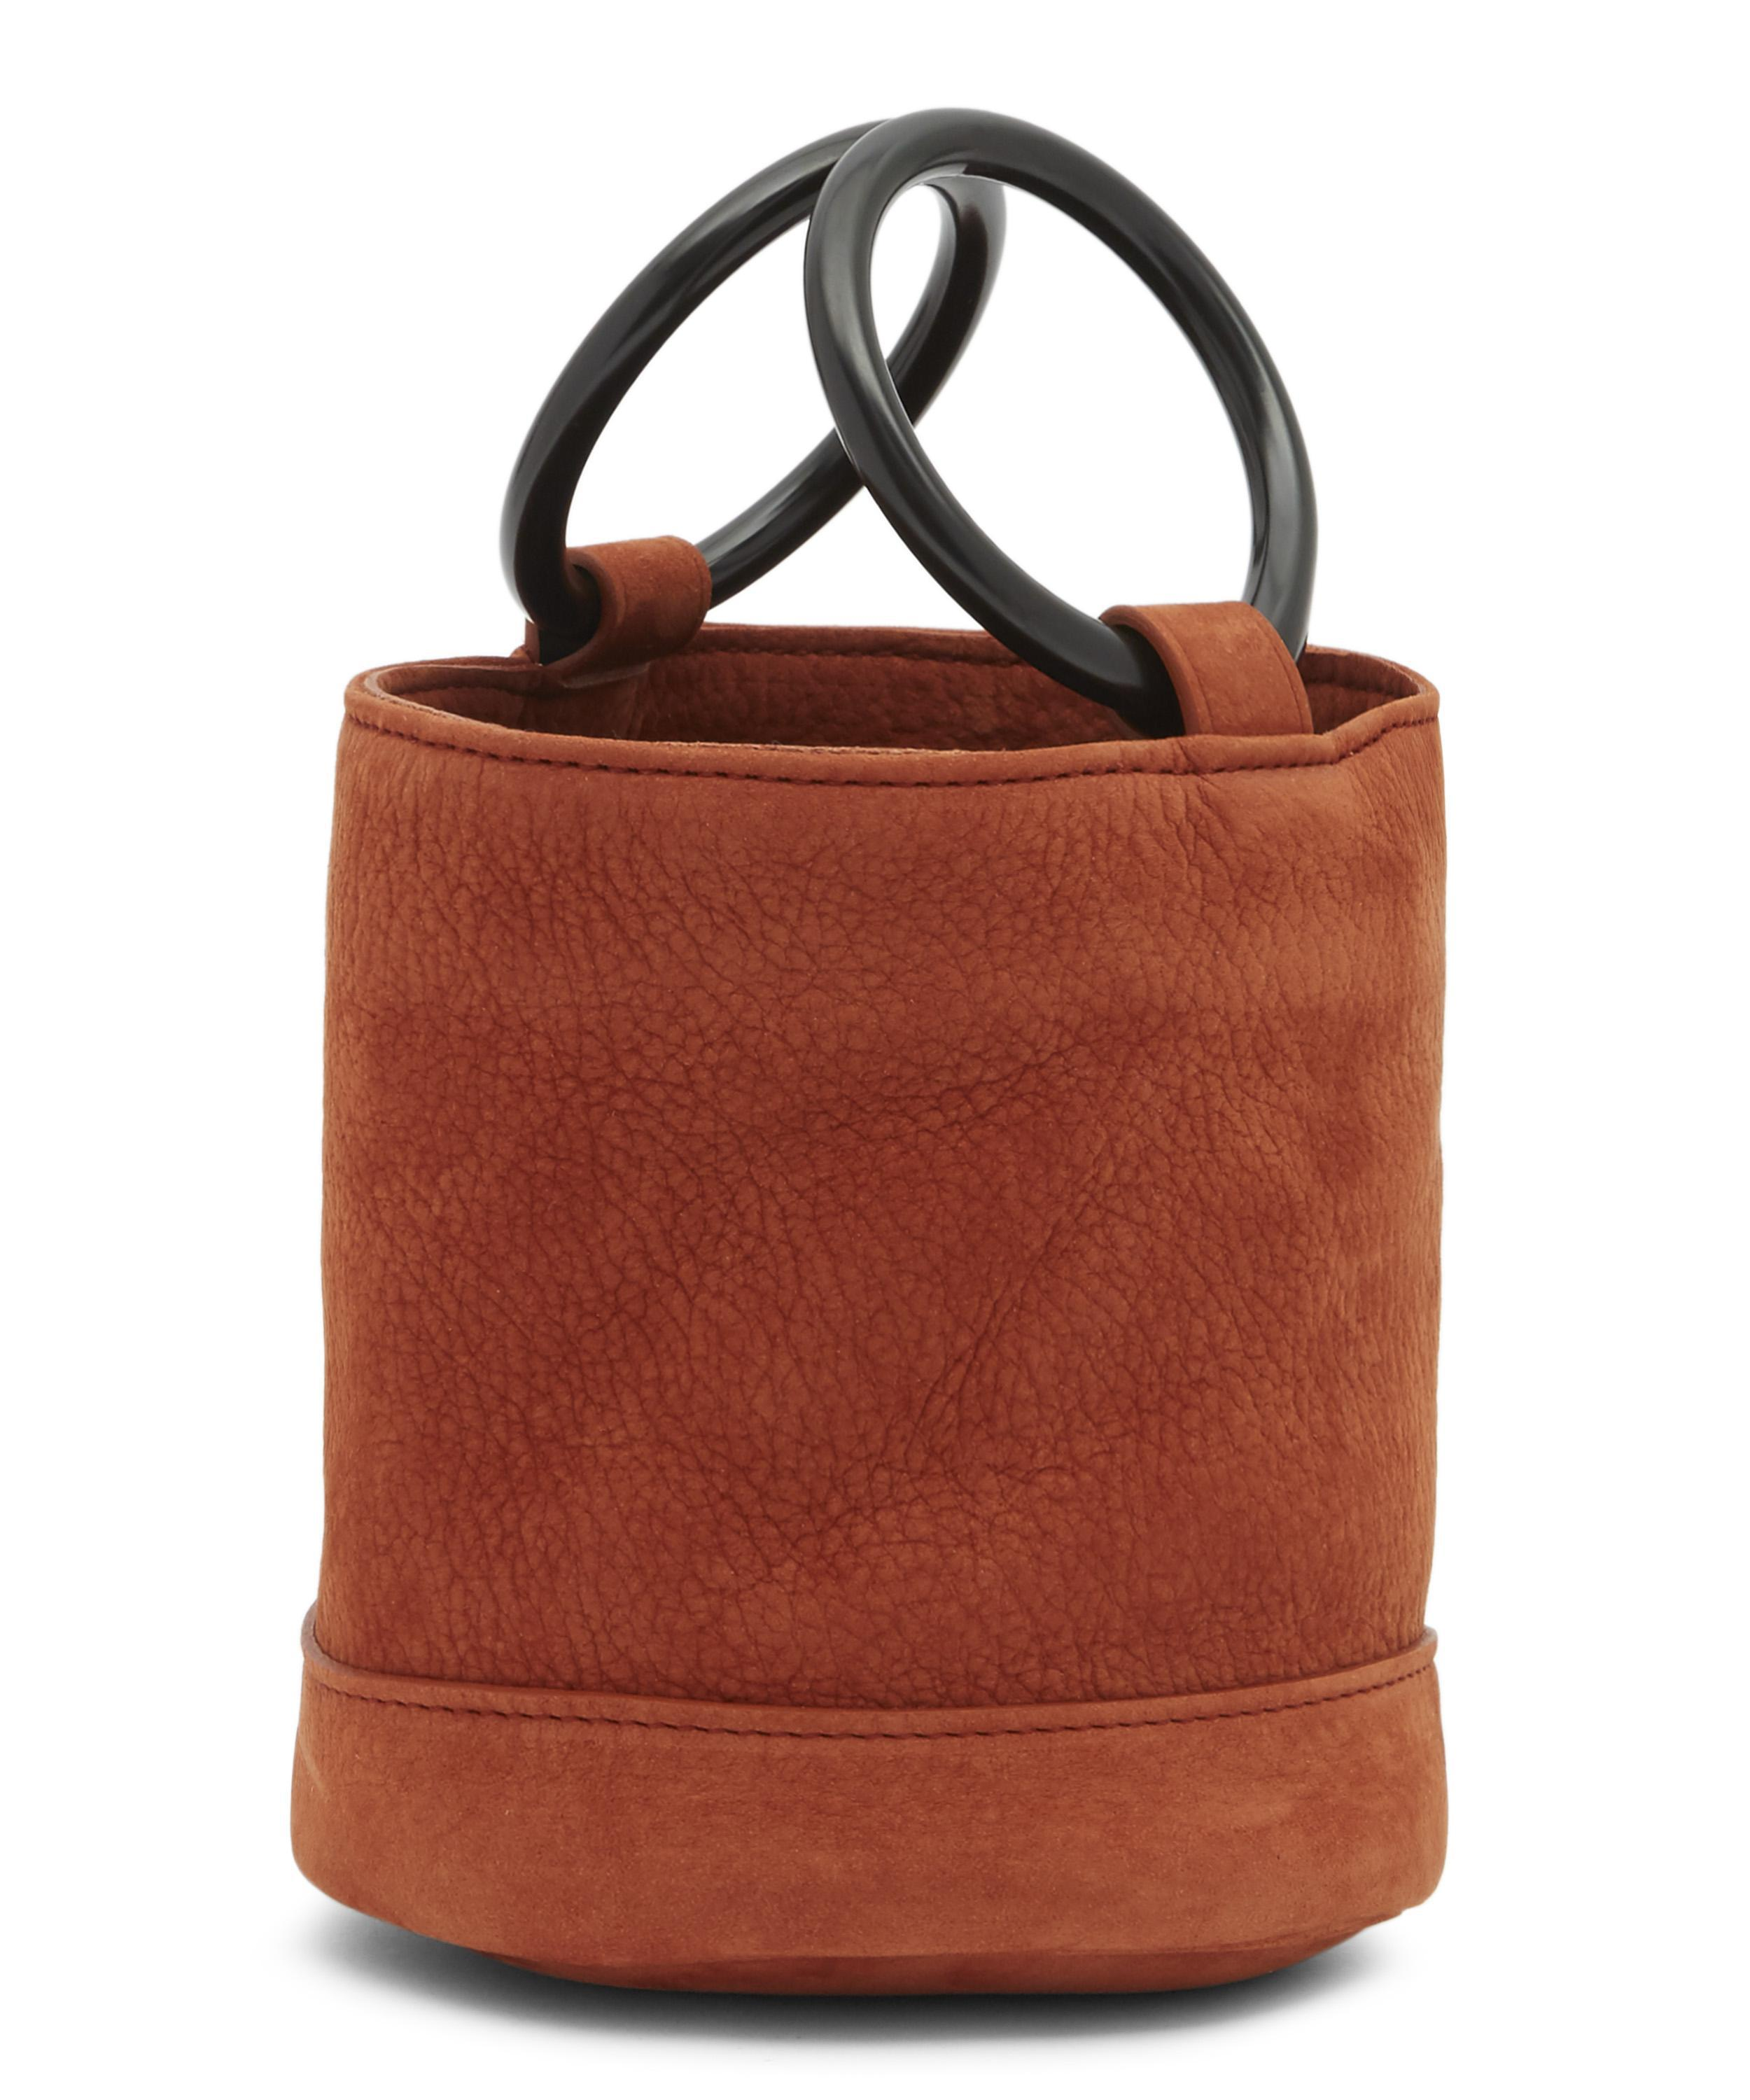 35861eee8e5d Lyst - Simon Miller Bonsai 15 Small Suede Bucket Bag